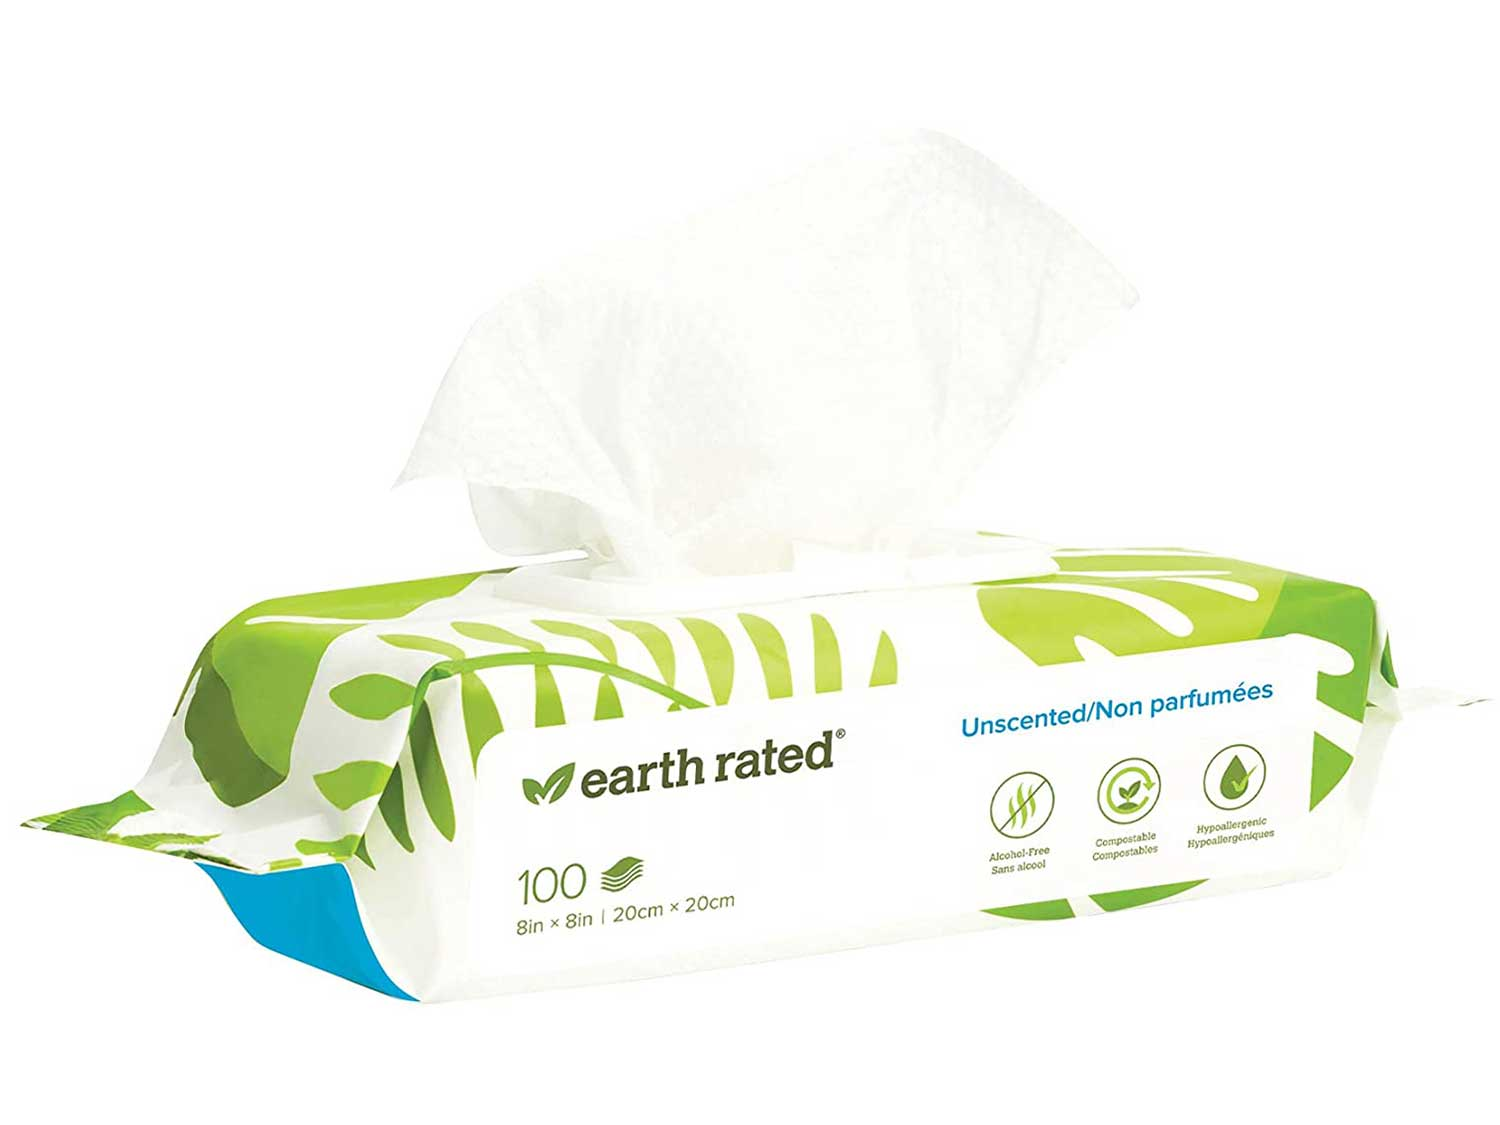 Earth Rated Dog Wipes, Plant-Based and Compostable Wipes for Dogs, USDA-Certified 99 Percent Biobased, Hypoallergenic, 8x8 Deodorizing Grooming Pet Wipes for Paws, Body and Butt